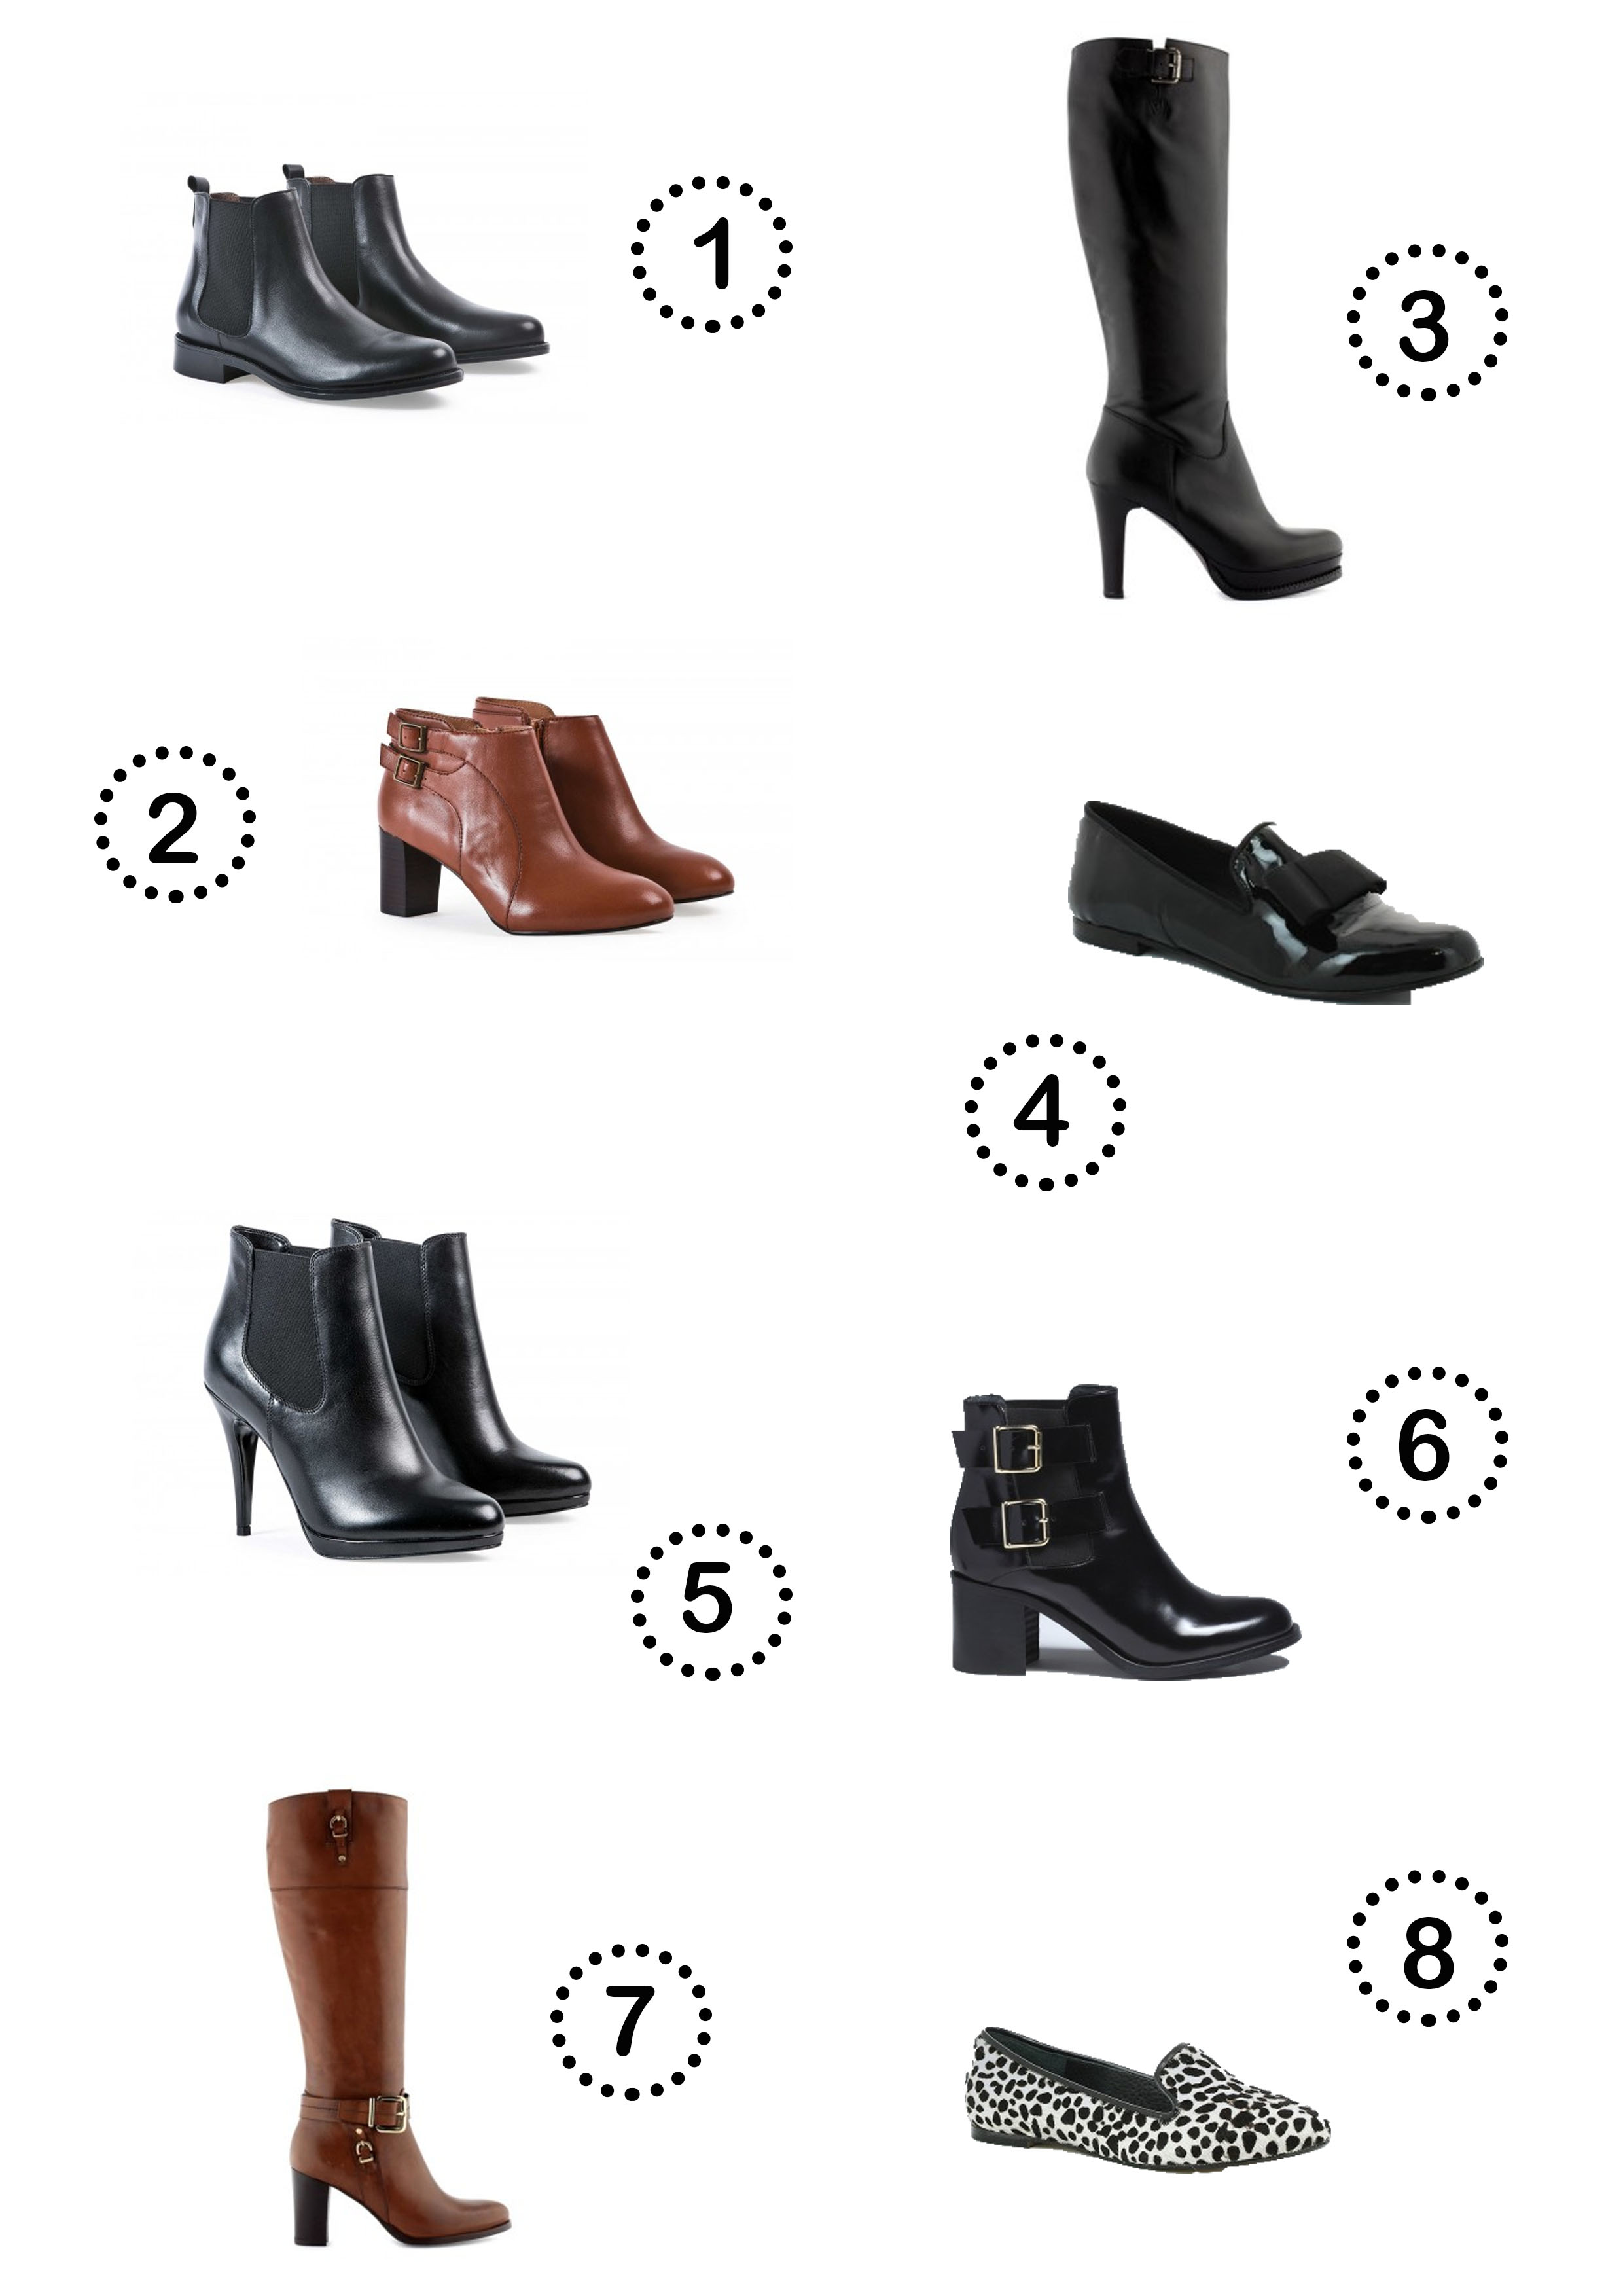 Chaussures andre a pau - Besson chaussures cholet ...